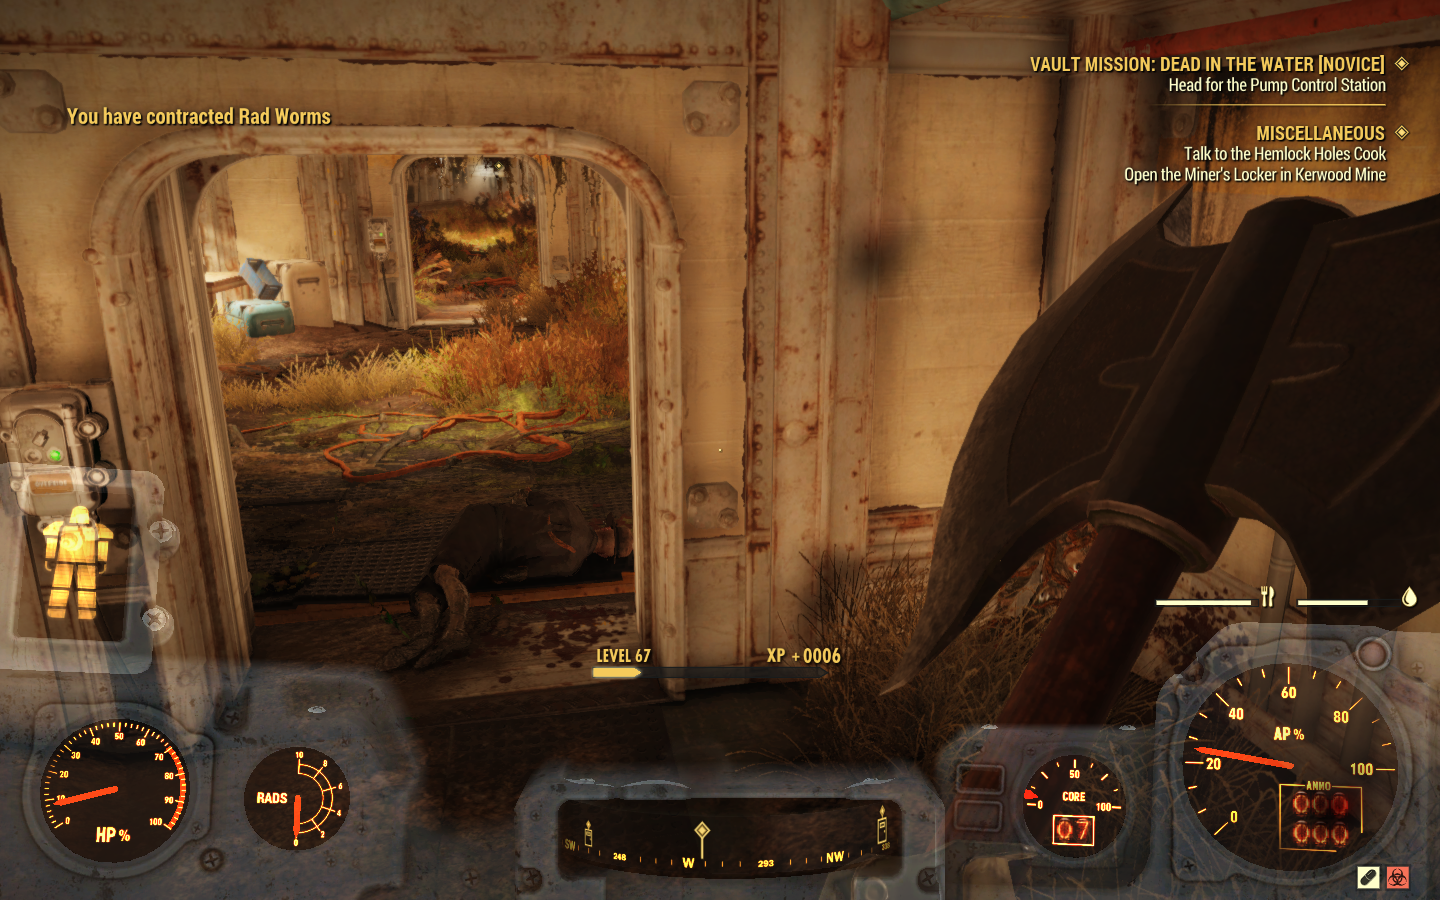 Fallout 76's new plant-infested Vault 94 is a bolthole for masochists